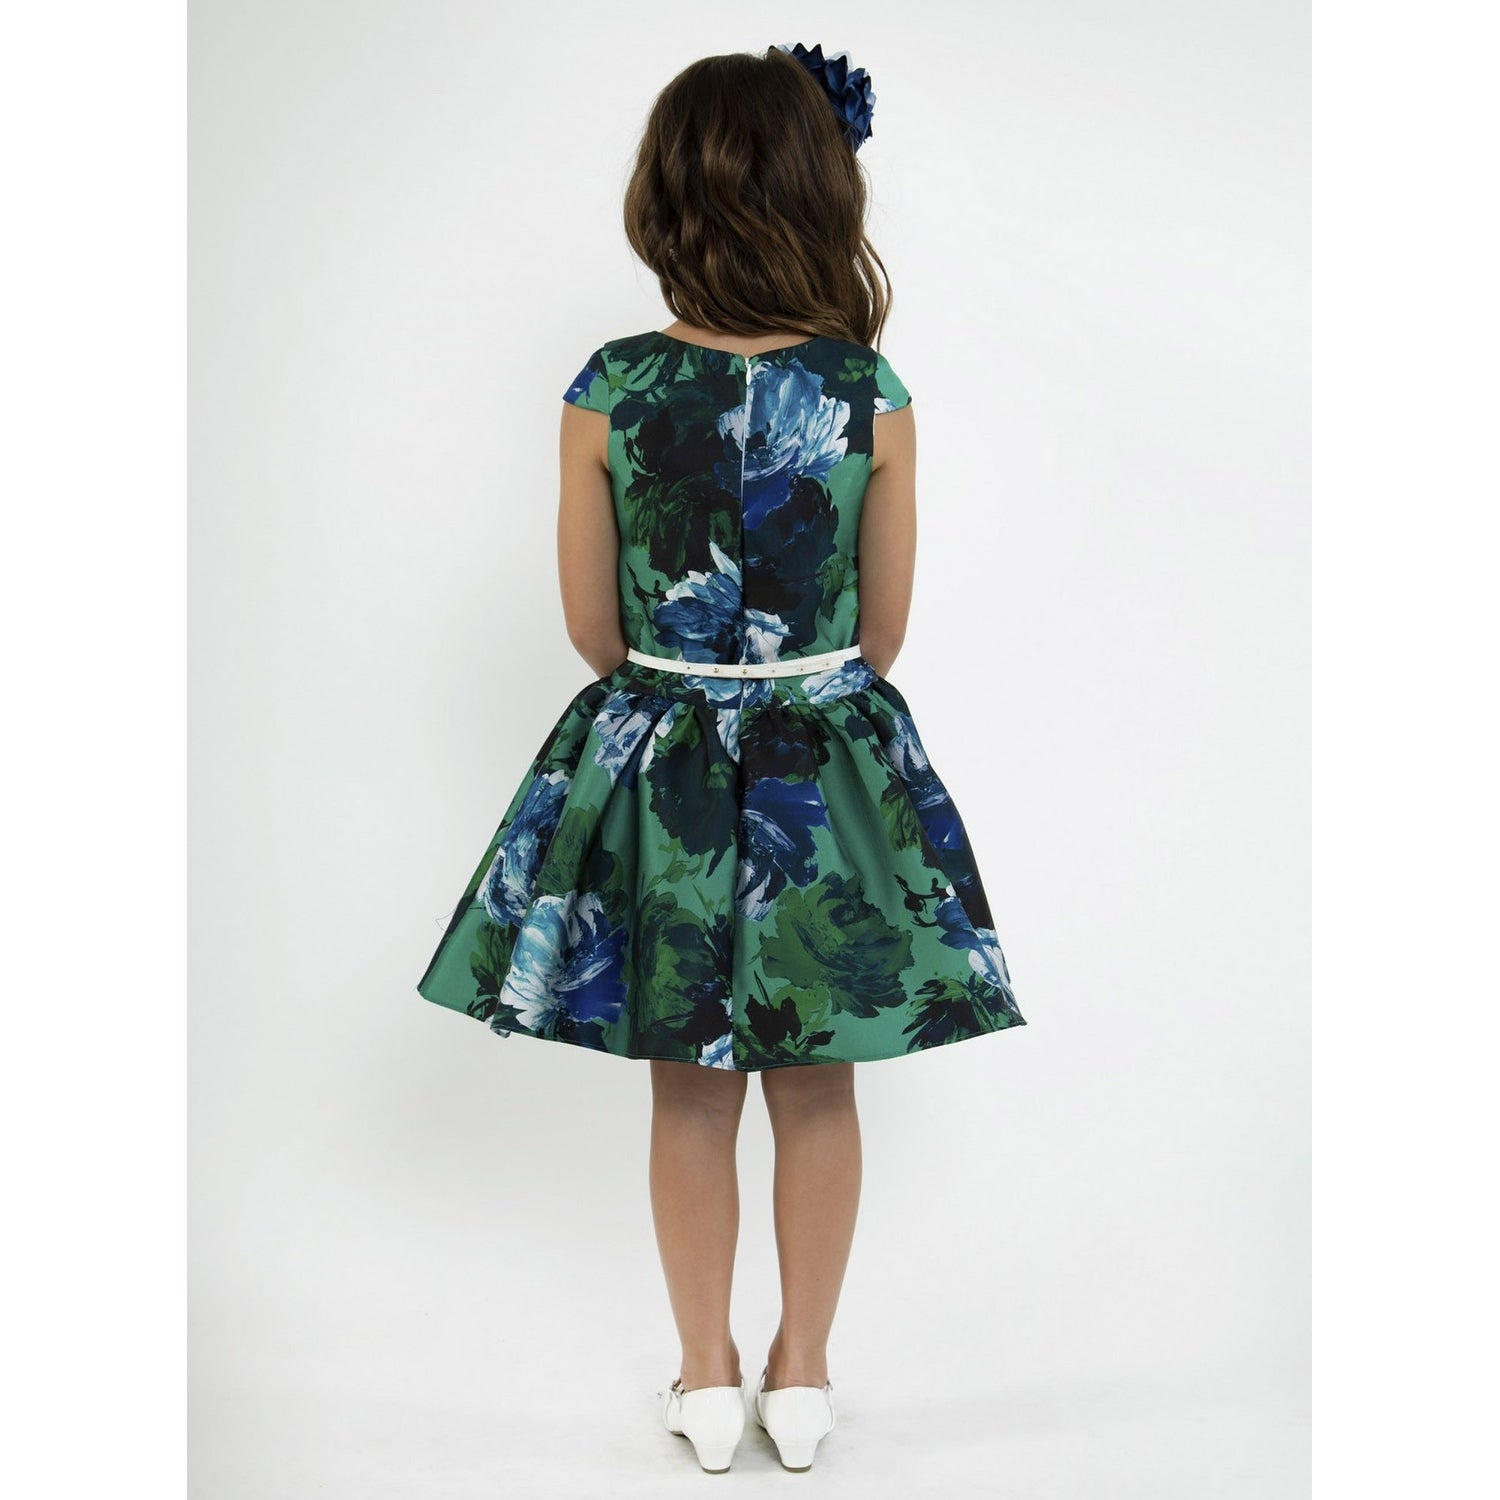 2839104626f027 Shop Kids Dream Girls Royal Blue Floral Mikado Junior Bridesmaid Dress -  Free Shipping Today - Overstock - 23159667